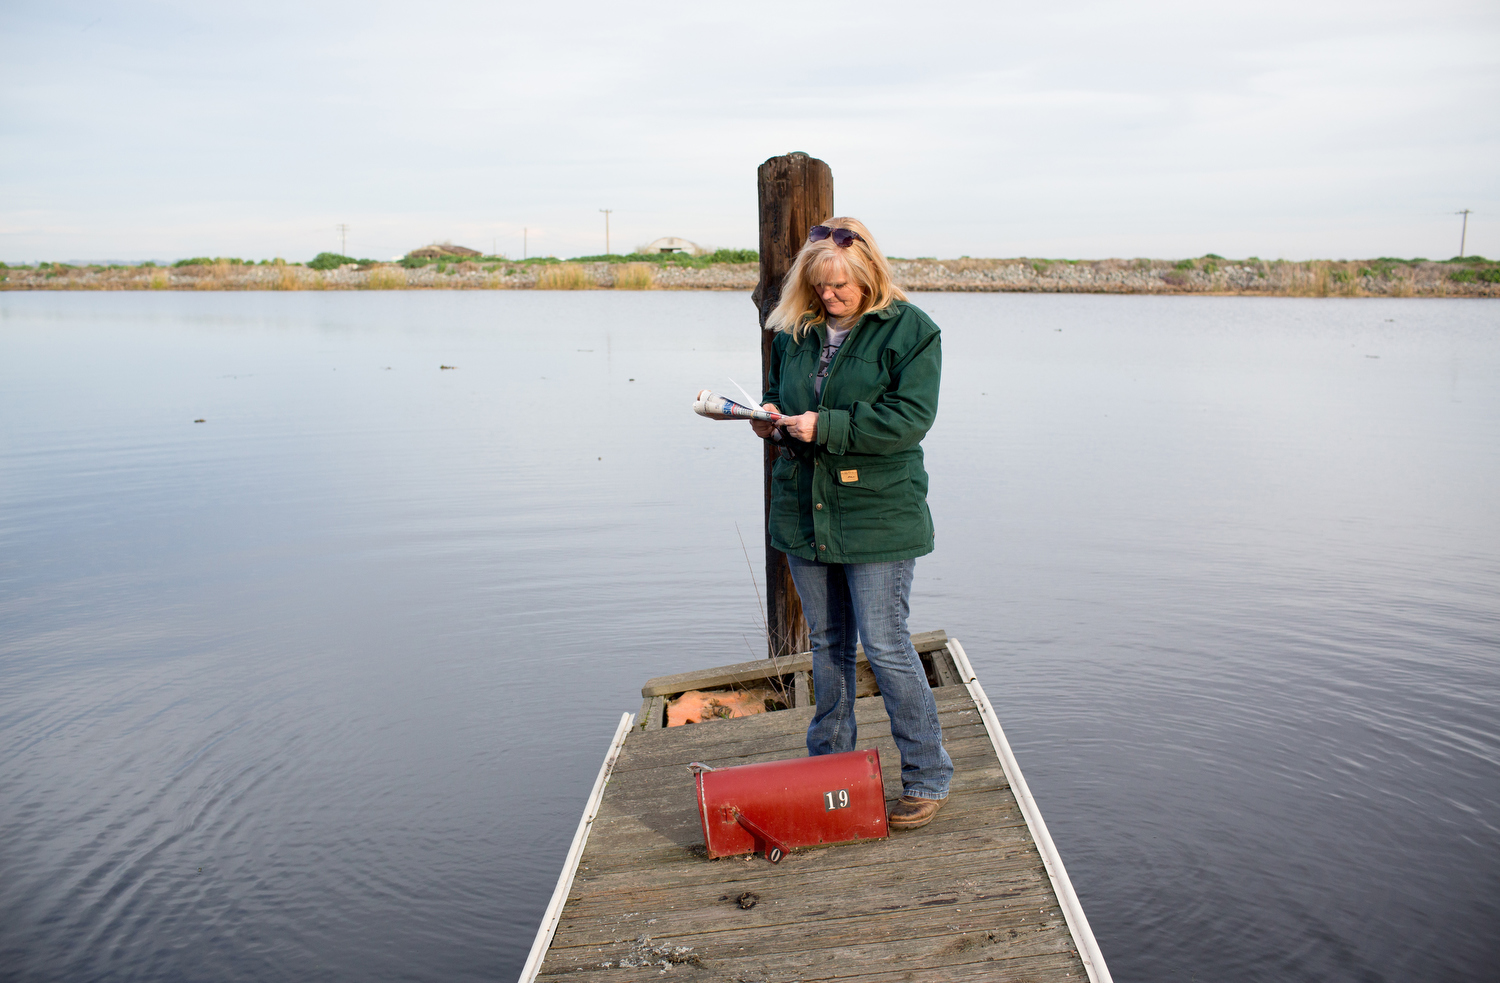 Karen Cunningham, a rancher and land owner on Bradford Island in the Sacramento–San Joaquin River Delta, checks her mailbox.